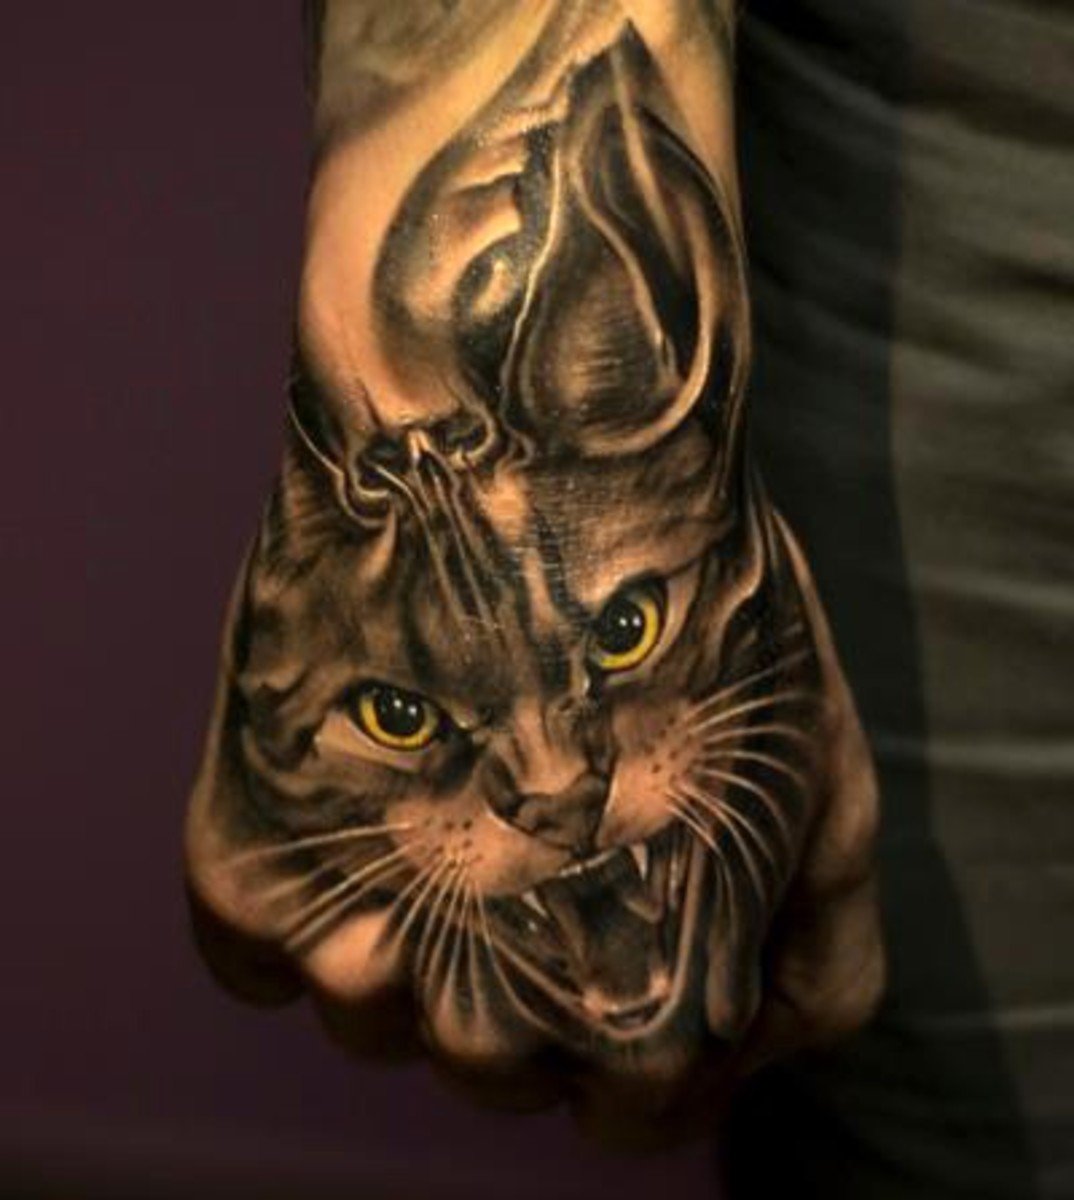 I think this is one of the best cat tattoos I have seen.